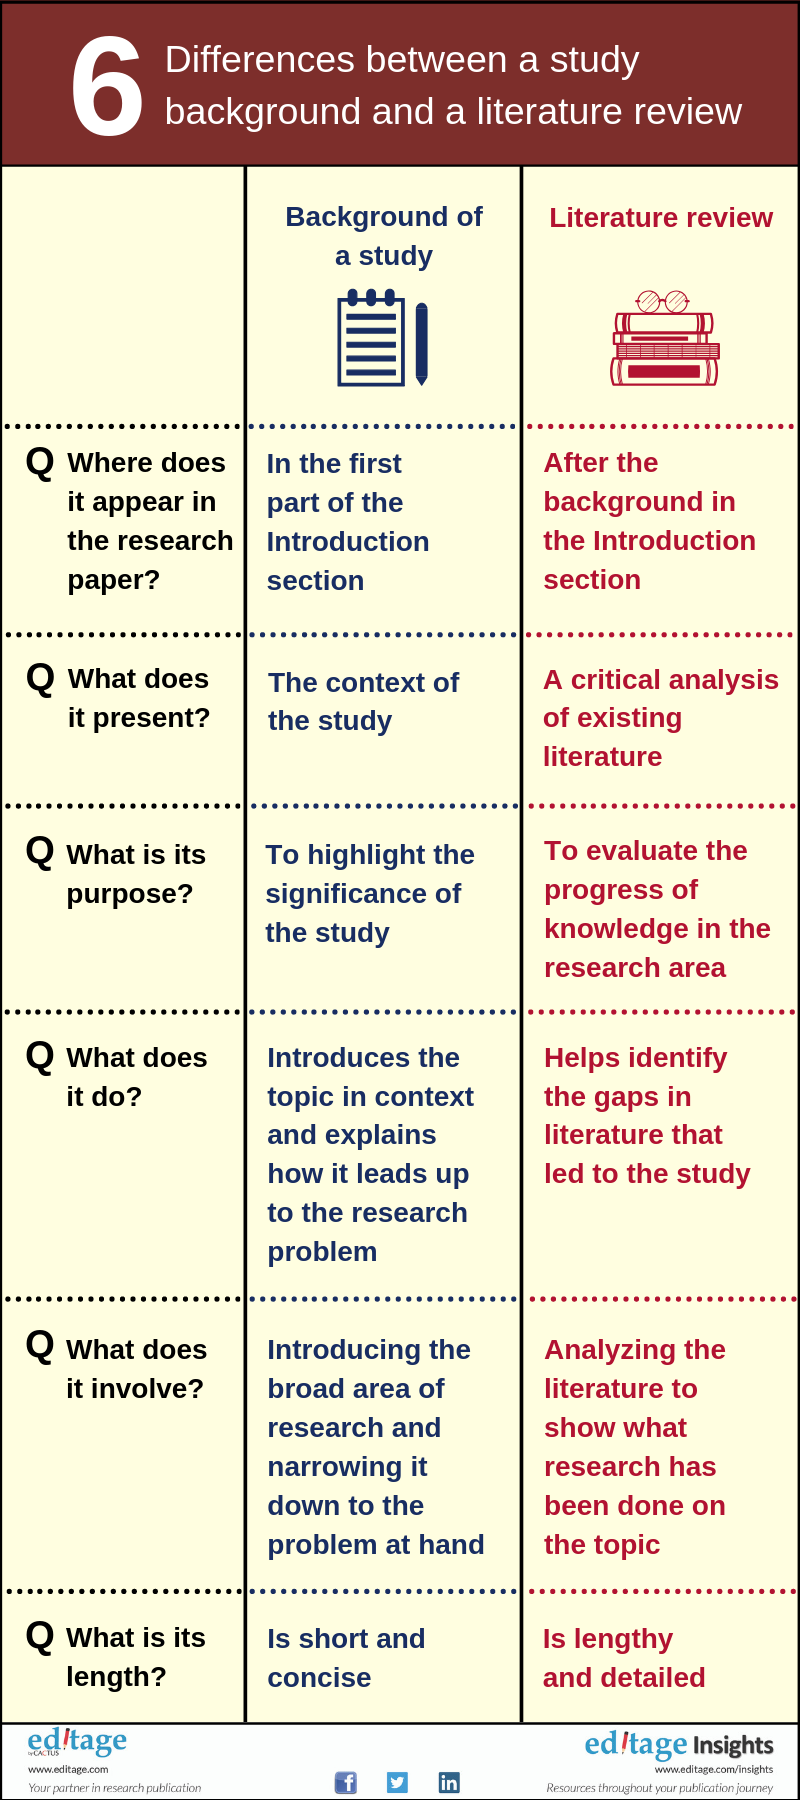 6 Differences between study background and literature review #infographic